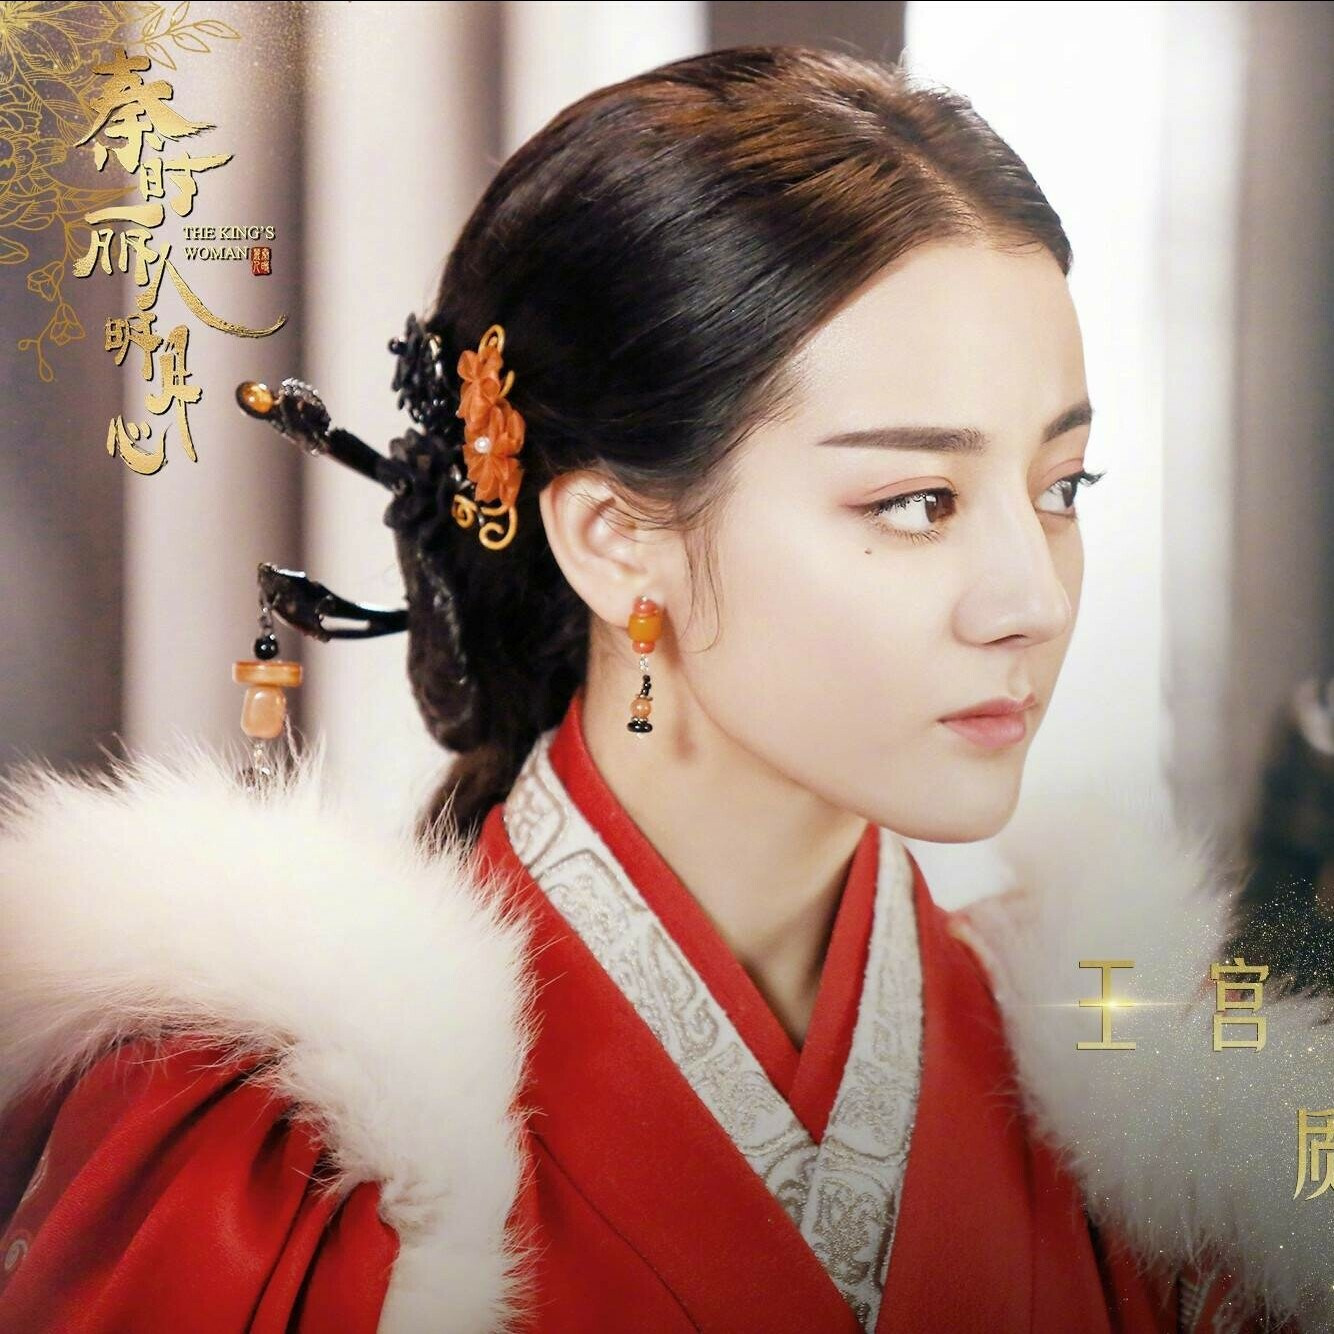 The Kings Woman Dilraba Dilmurat Zhang Bin Bin